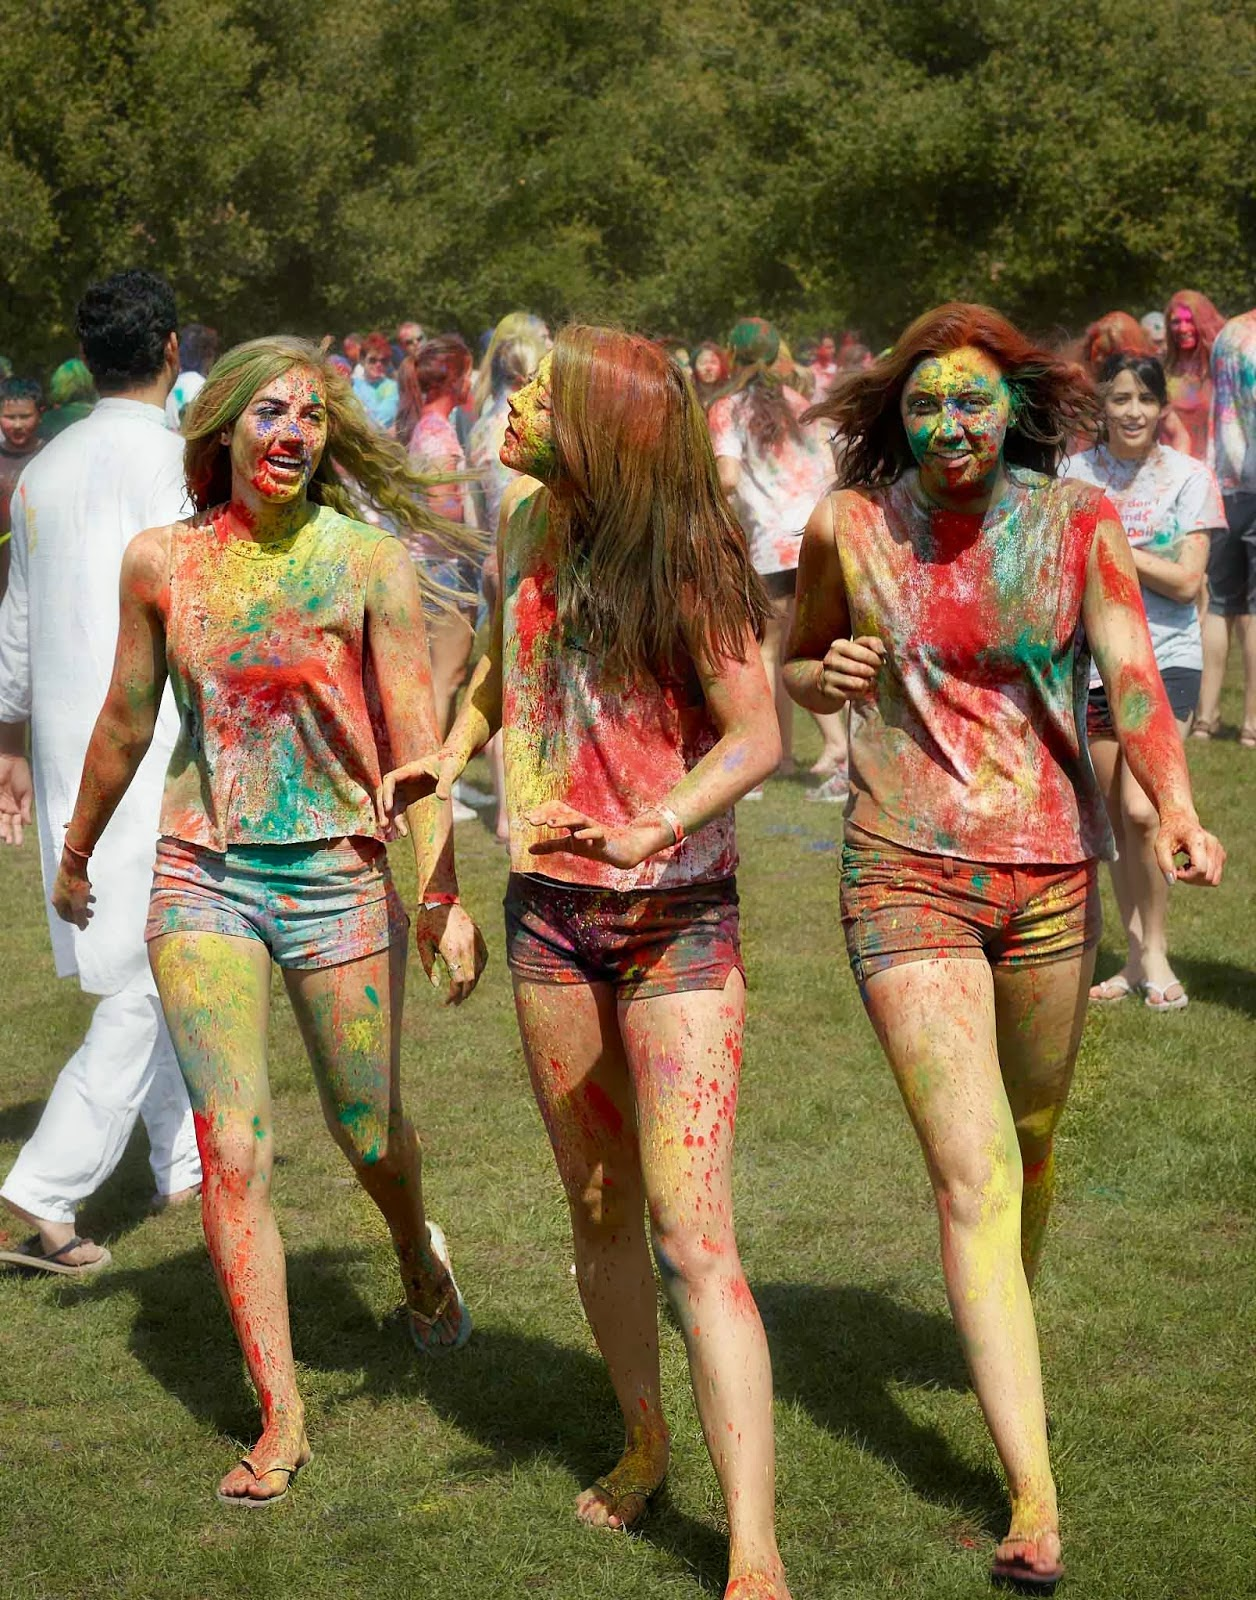 girls-in-hot-pants-playing-holi